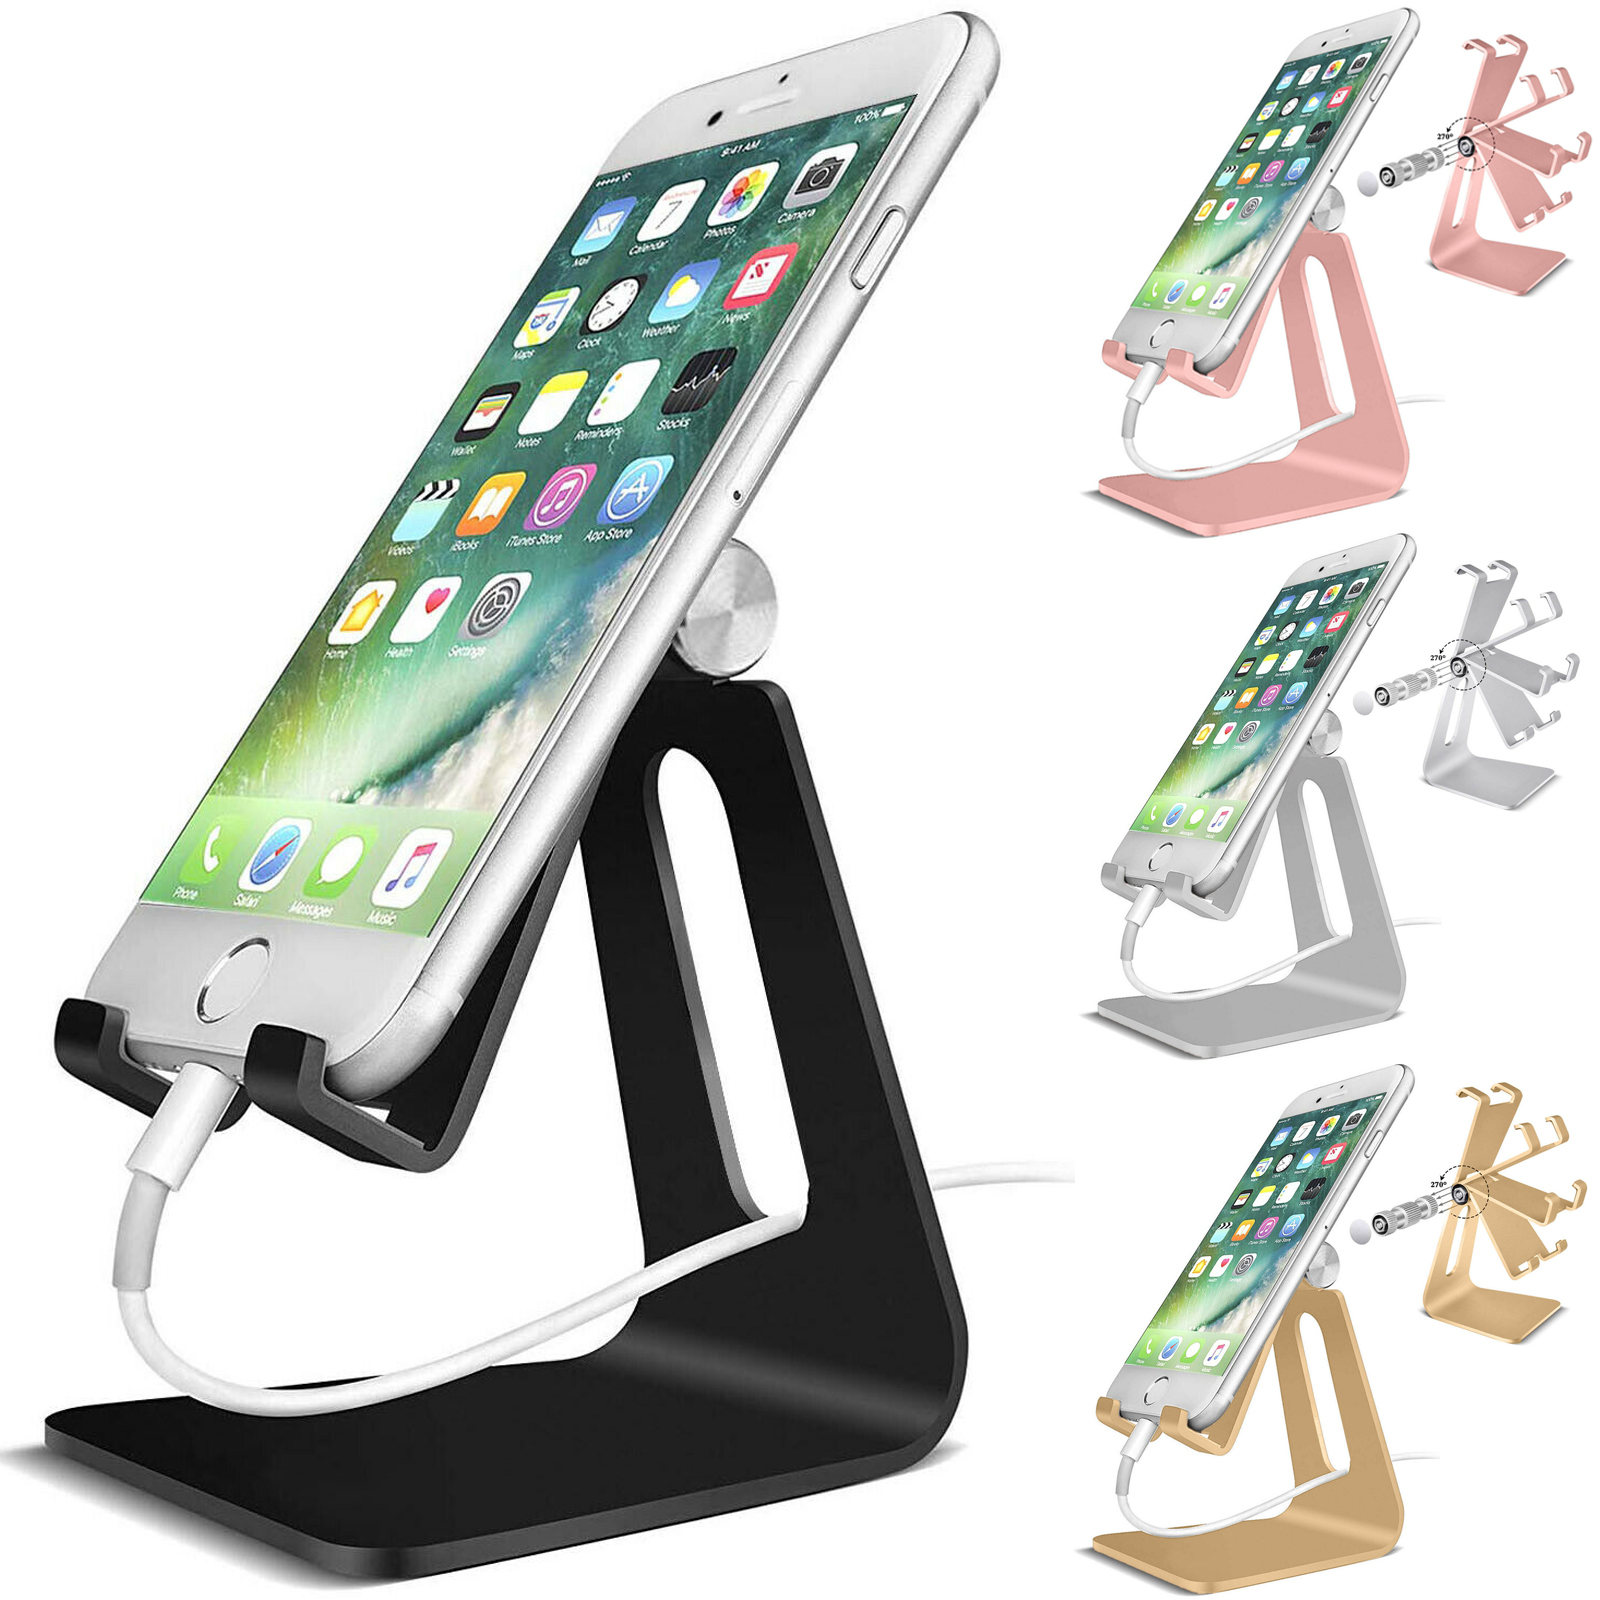 Products Adjustable Cell Phone Tablet Switch Stand Aluminum Desk Table Holder Cradle Dock Mount Compatible with iPhone Galaxy Edge All Smart Phone Rose Gold + Silver + Black + Gold